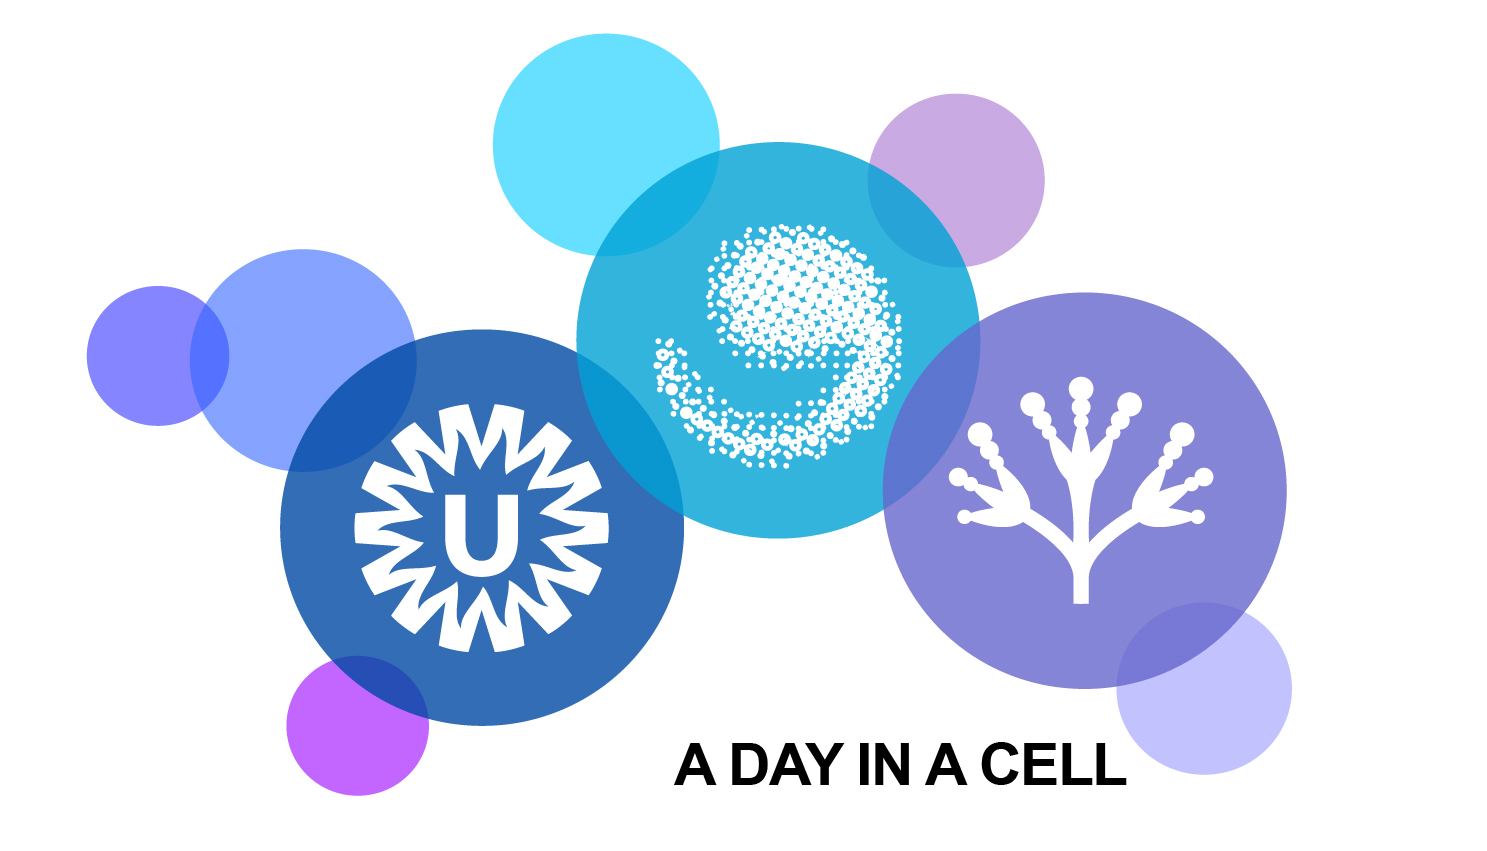 A day in the Cell Visit us with your family at the Weekend of Science Sunday October 7th 11.00 - 16.00